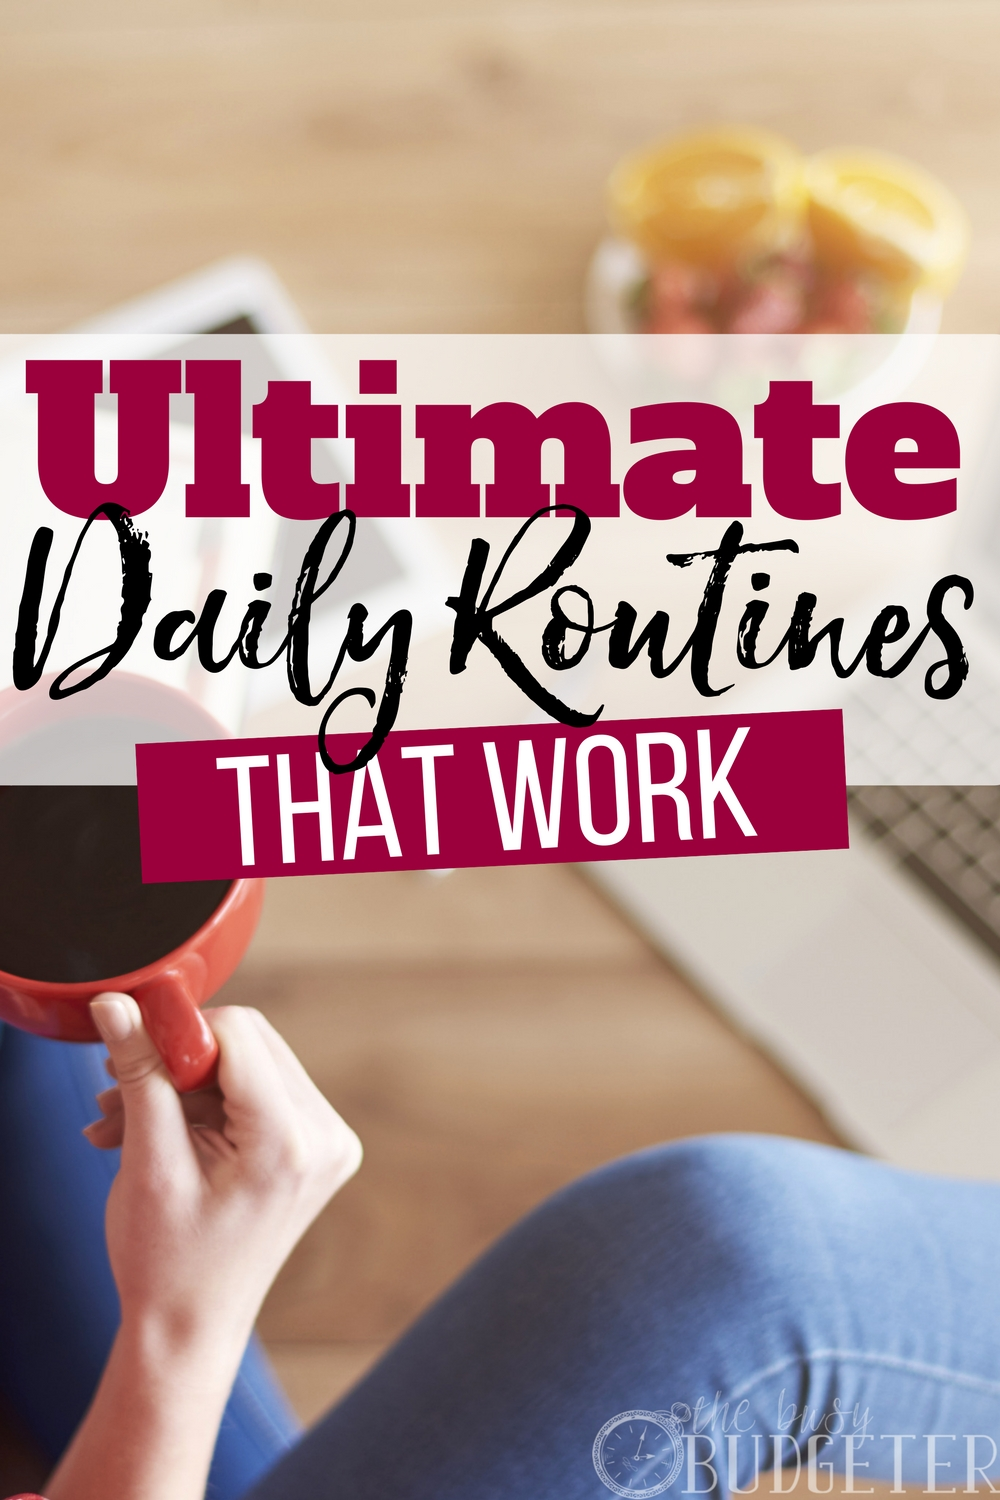 I could NEVER figure out how to create my own daily routines, but I tried step-by-step guide and WOW does this WORK! Feeling less frazzled and more on top of life. Thank you!!